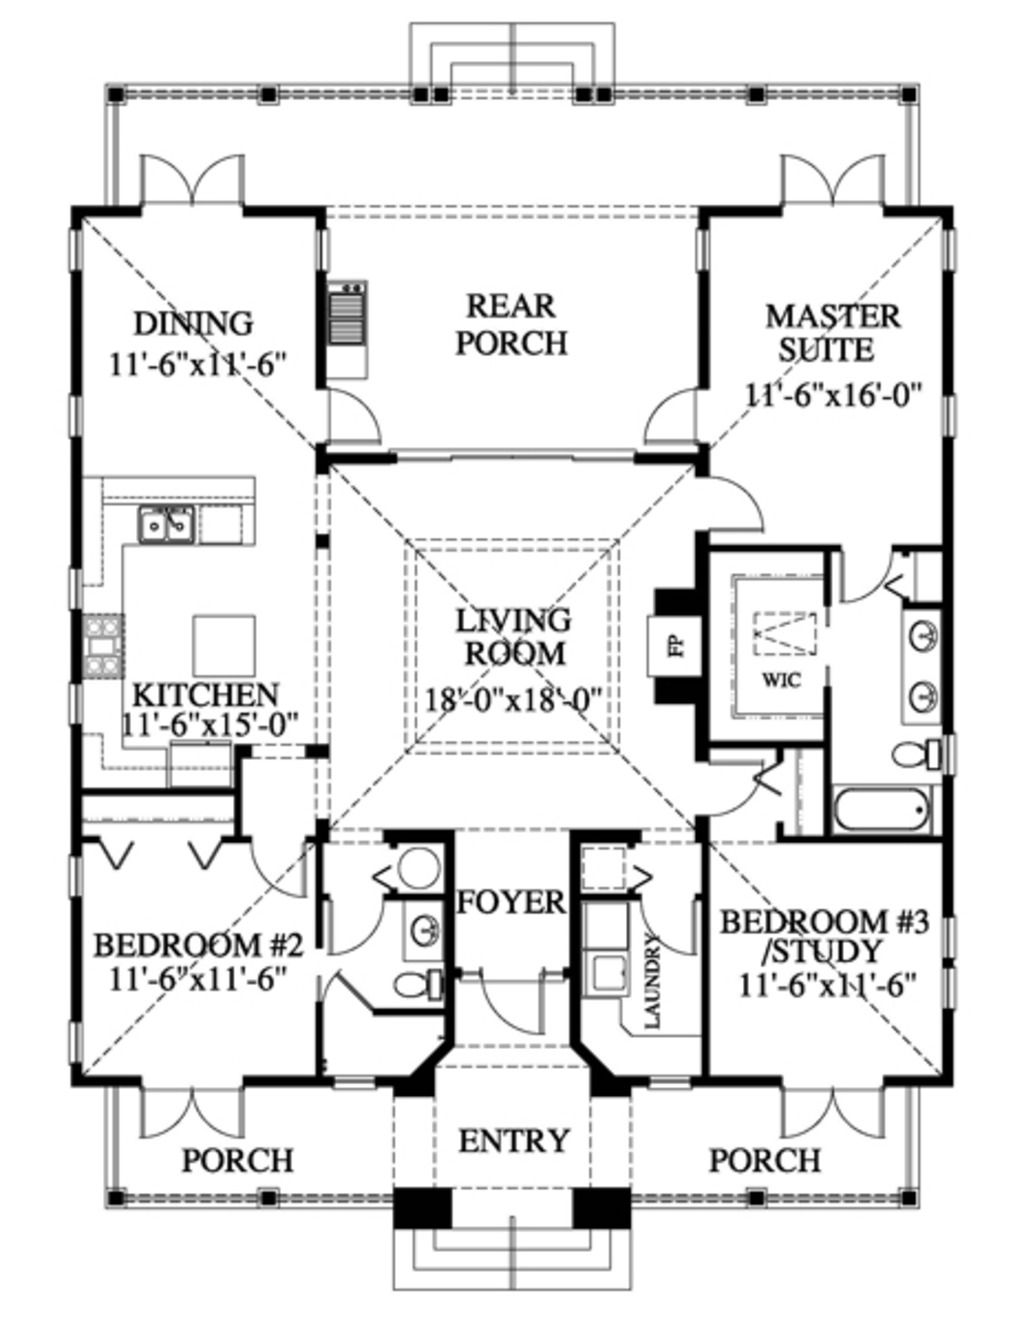 The Cracker An Iconic House Type Dog Trot House Plans Beach Style House Plans Southern House Plans